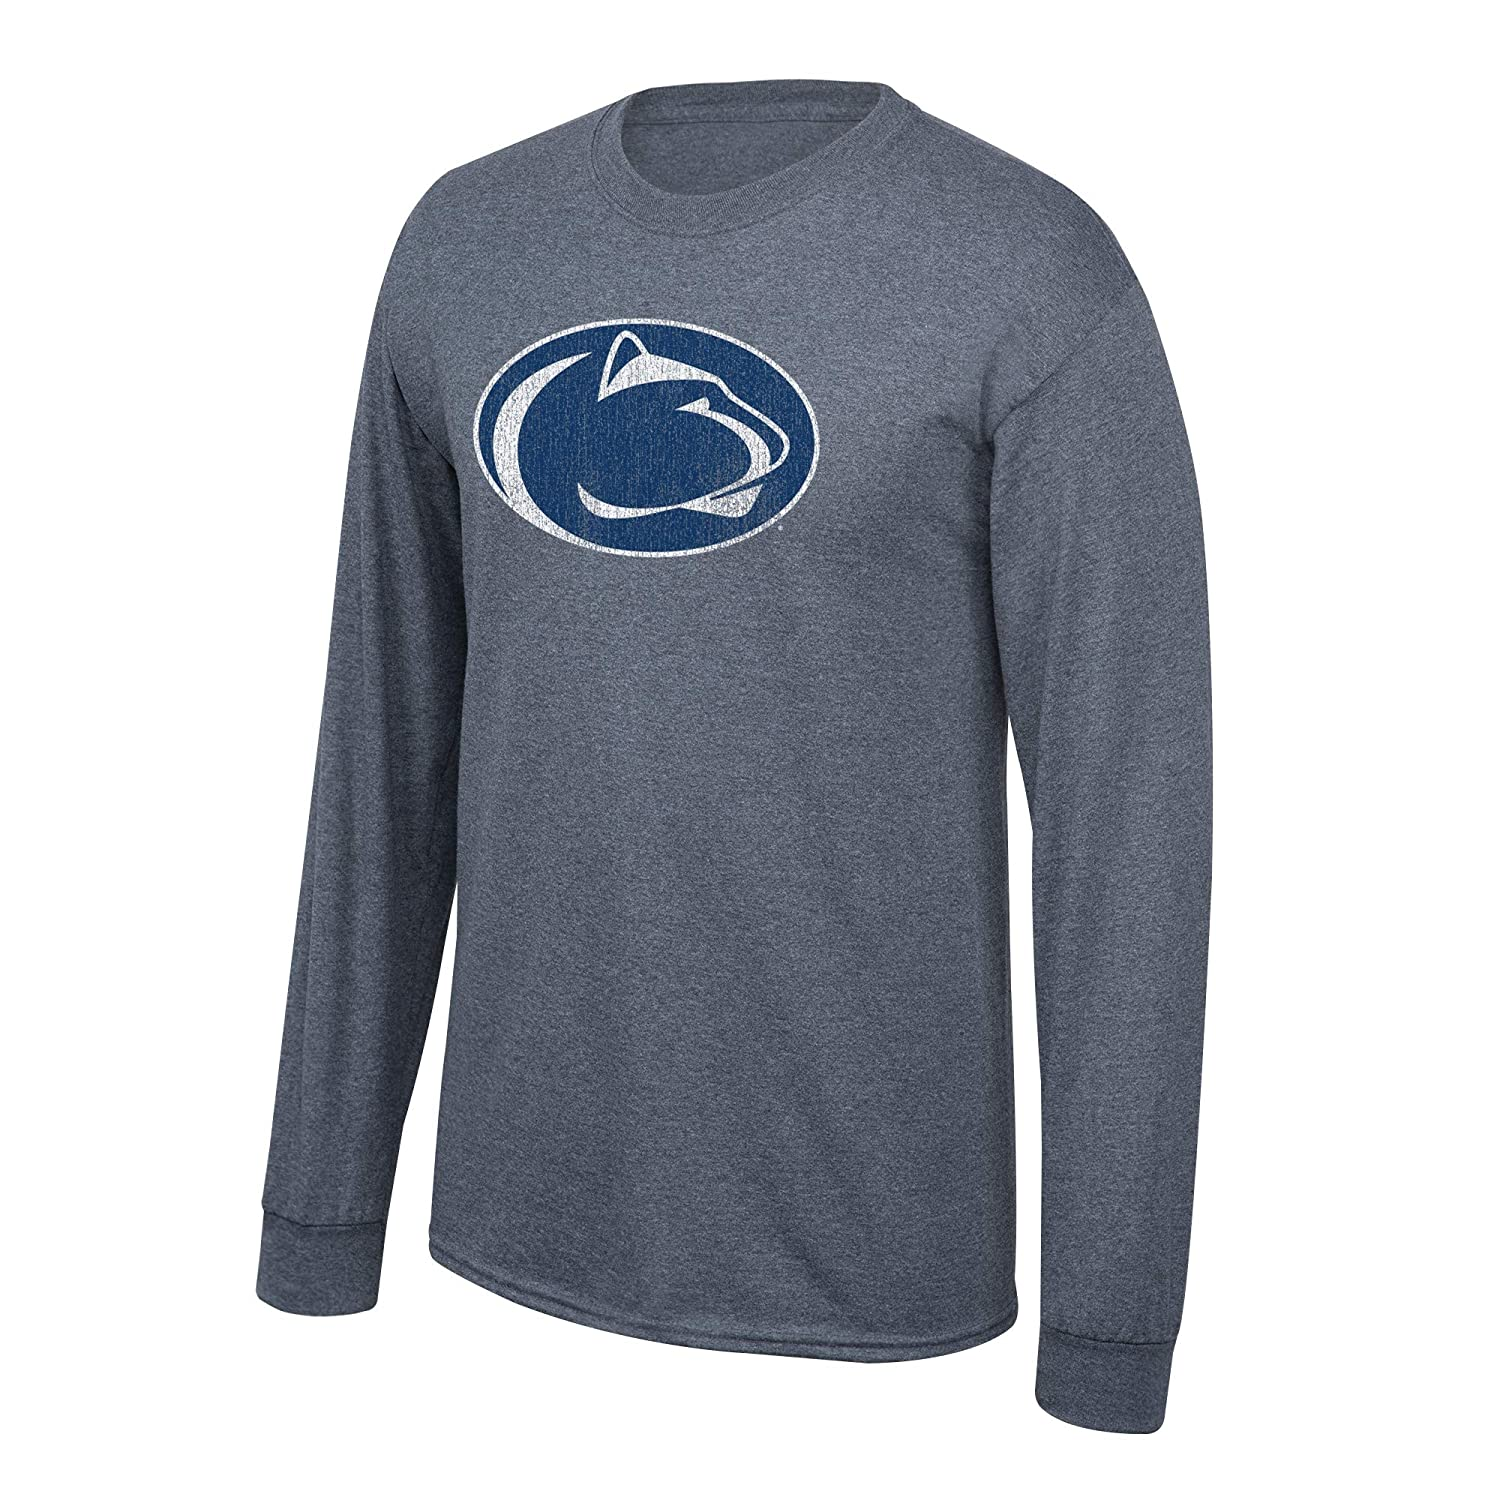 Elite Fan Shop NCAA Mens Penn State Nittany Lions Long Sleeve T Shirt Charcoal Vintage Penn State Nittany Lions Charcoal XX Large